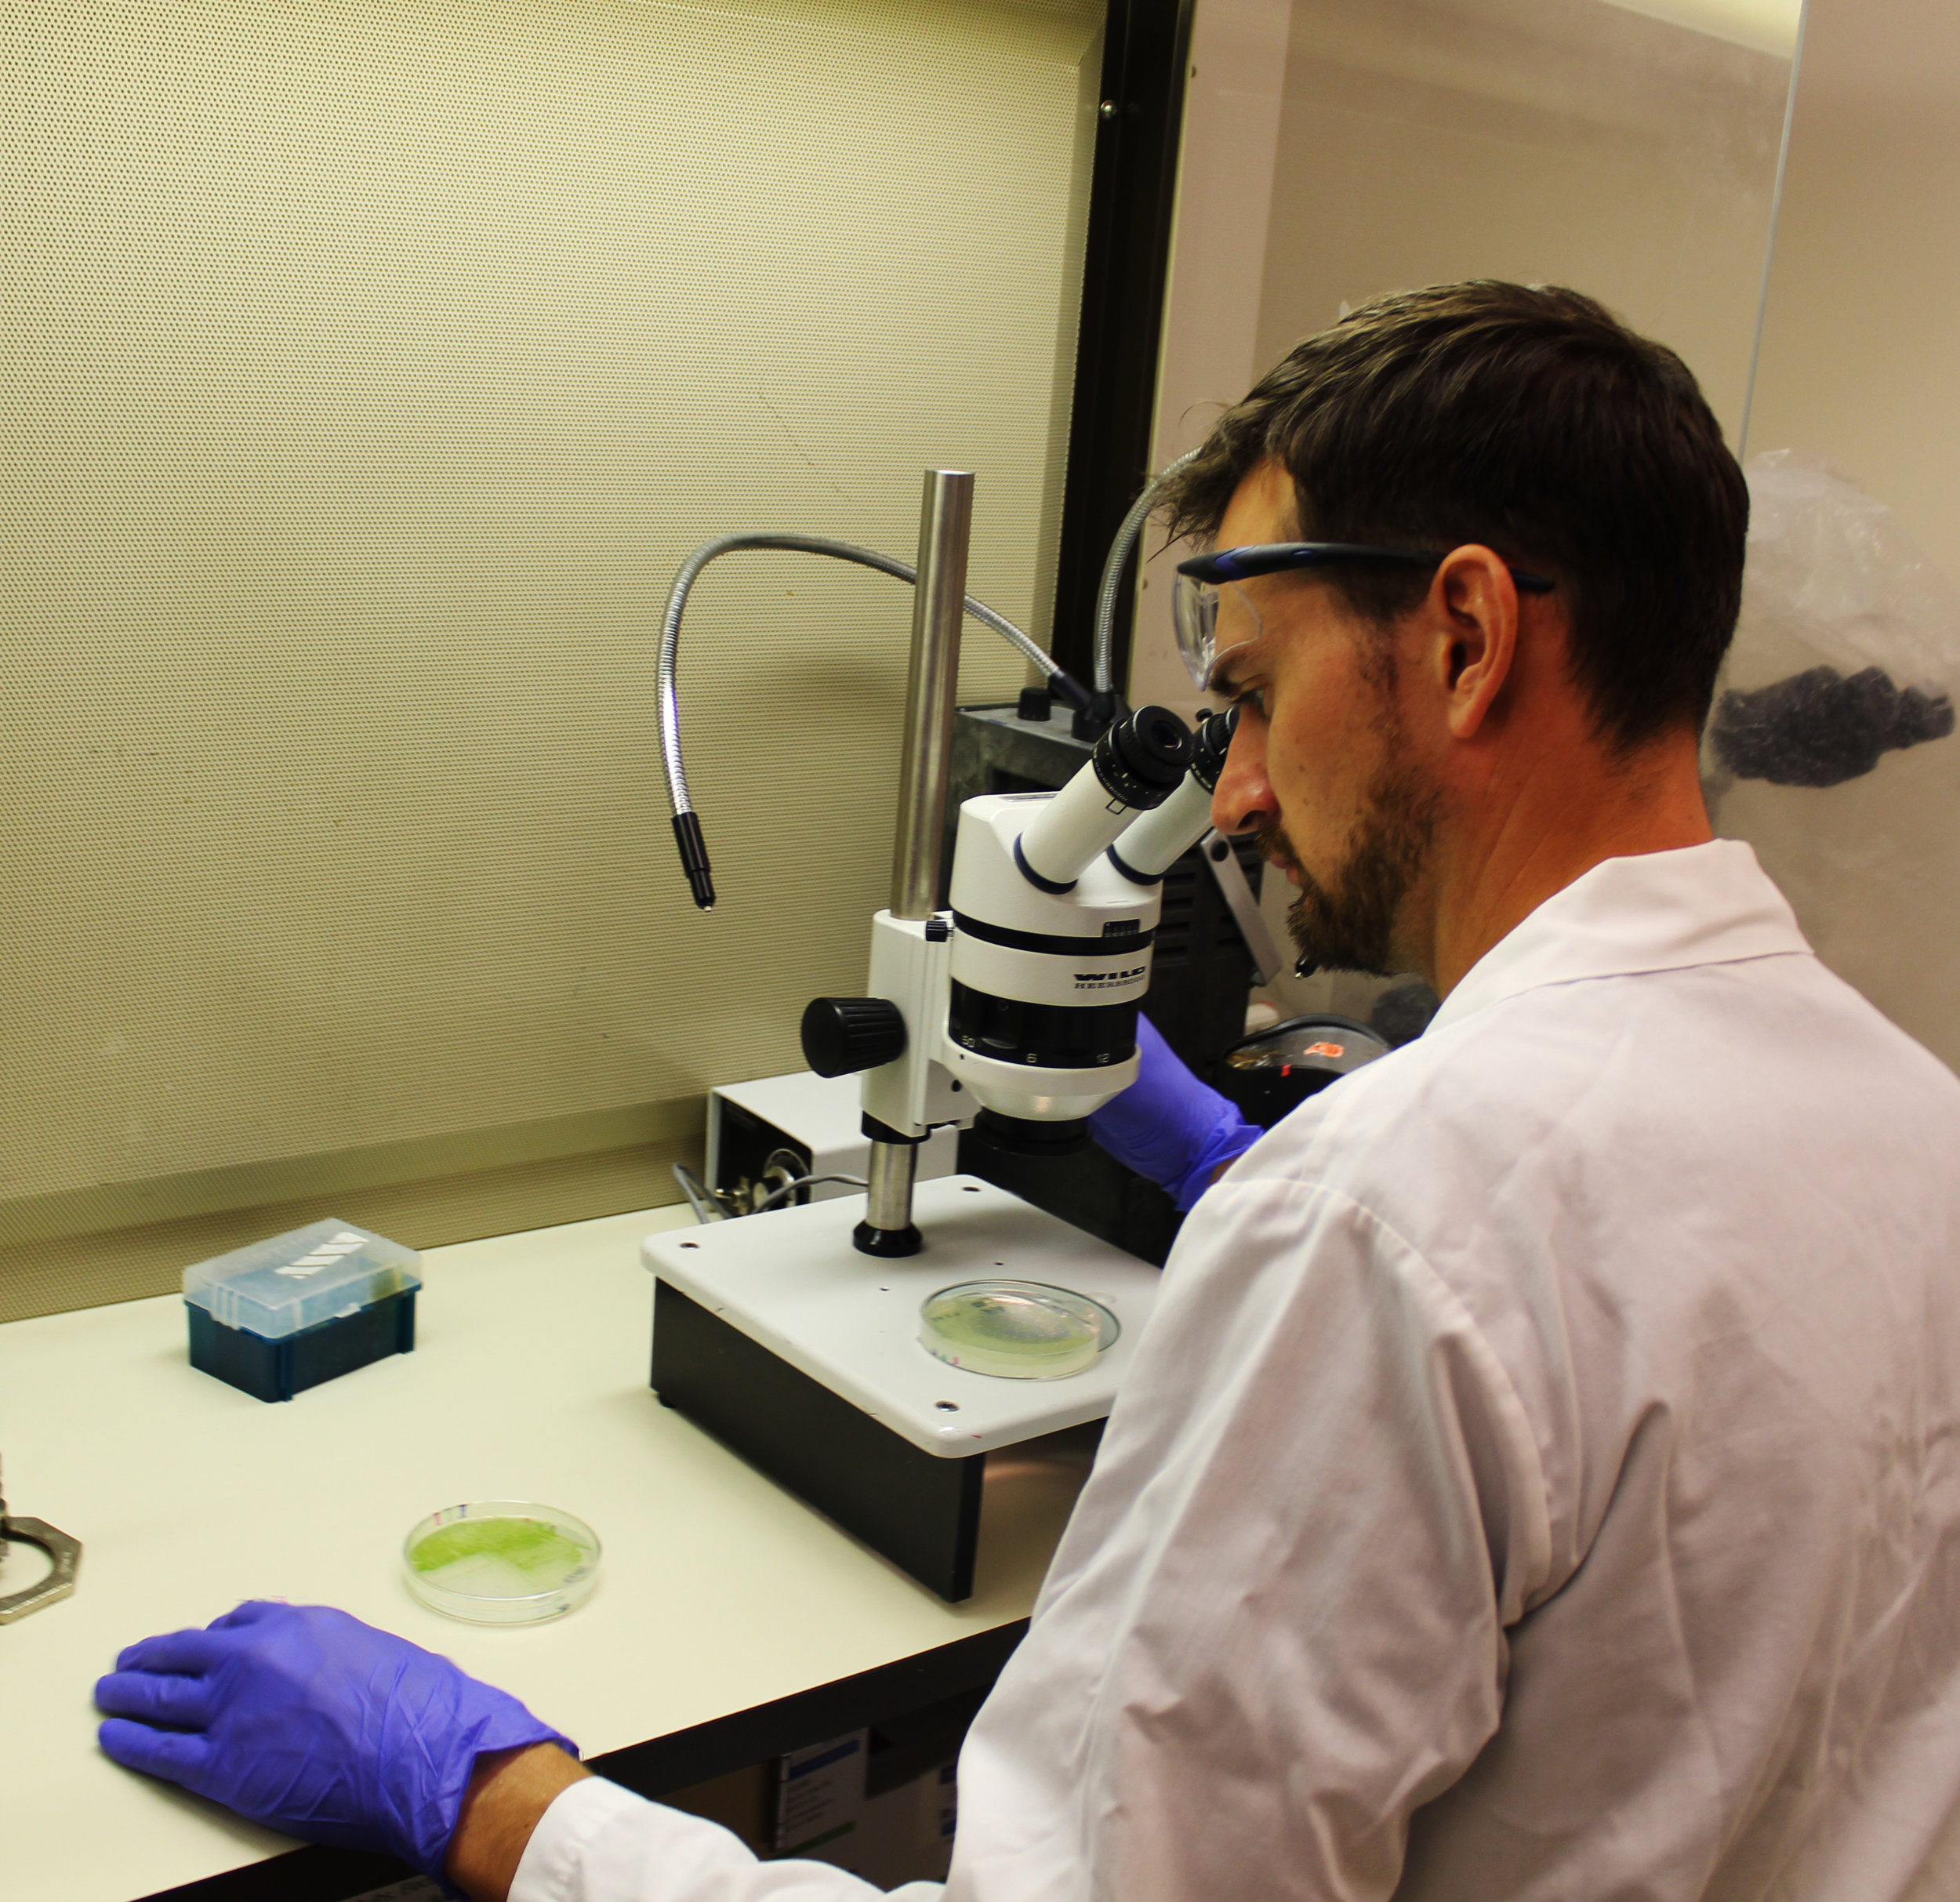 Dr. Bishé looking very seriously at some agar plates